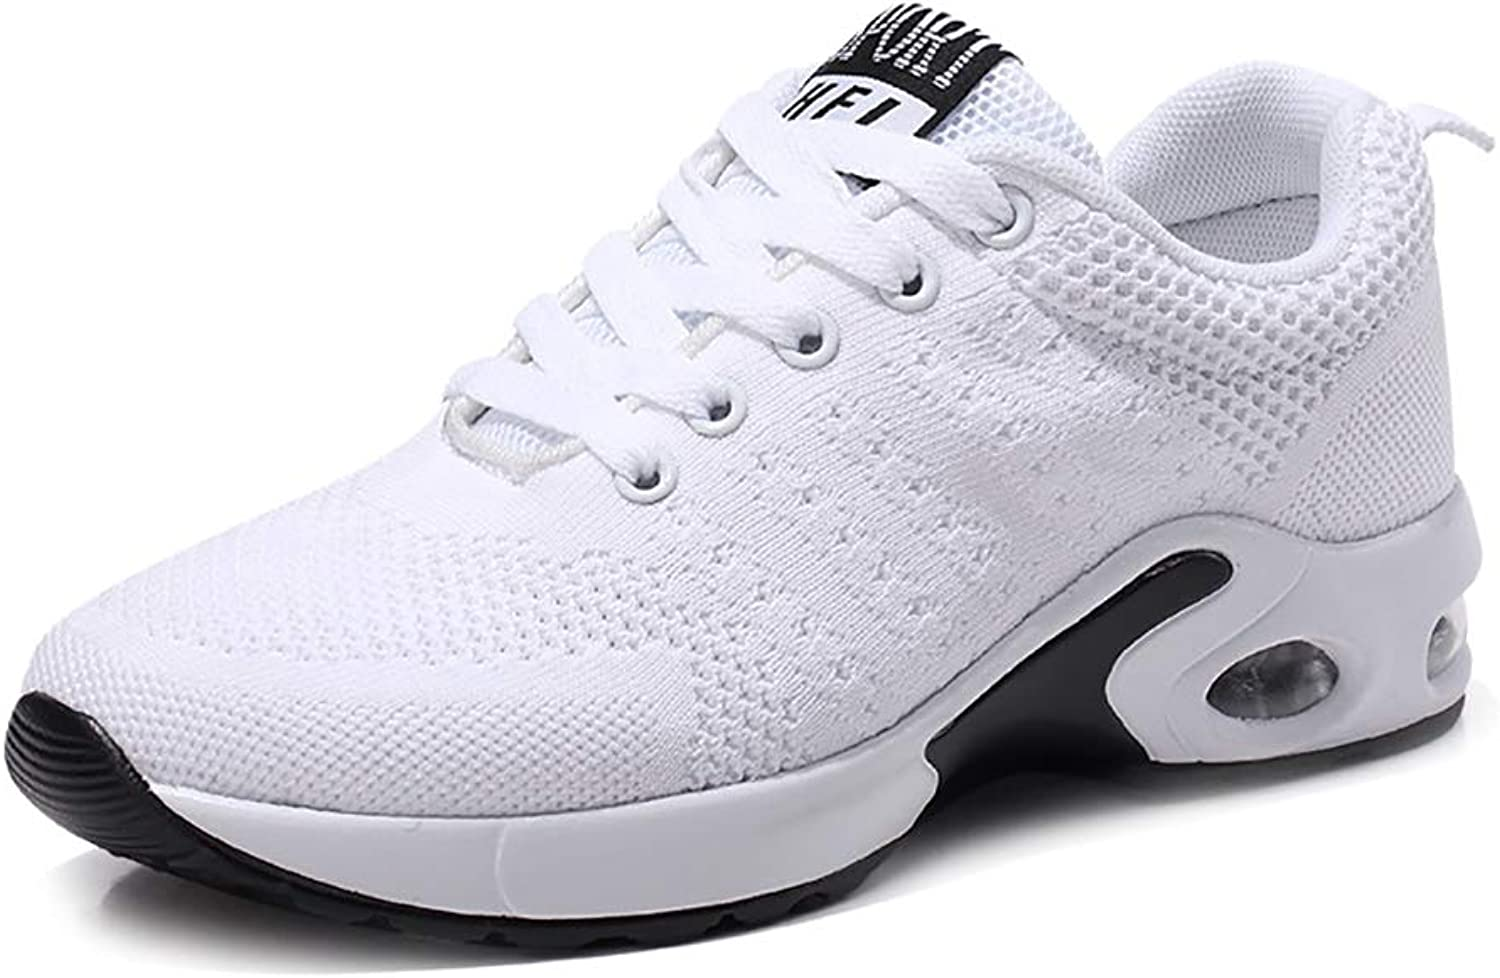 Mzq-yq Sports shoes Men's Running shoes Men's shoes, Breathable White Couple shoes Fashion Student Tide Classic Wild